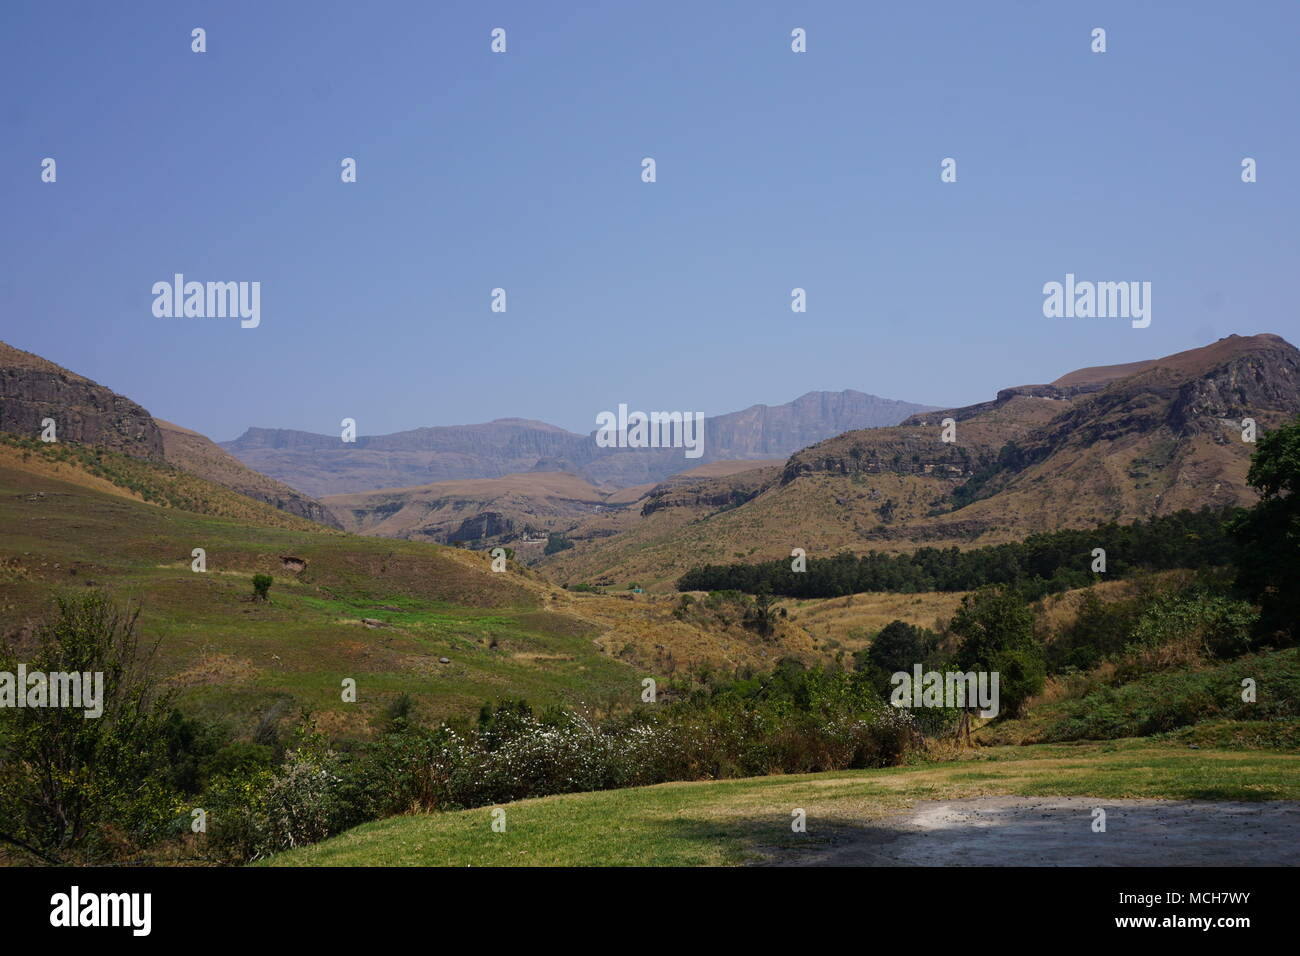 Montagnes du Drakensberg Photo Stock